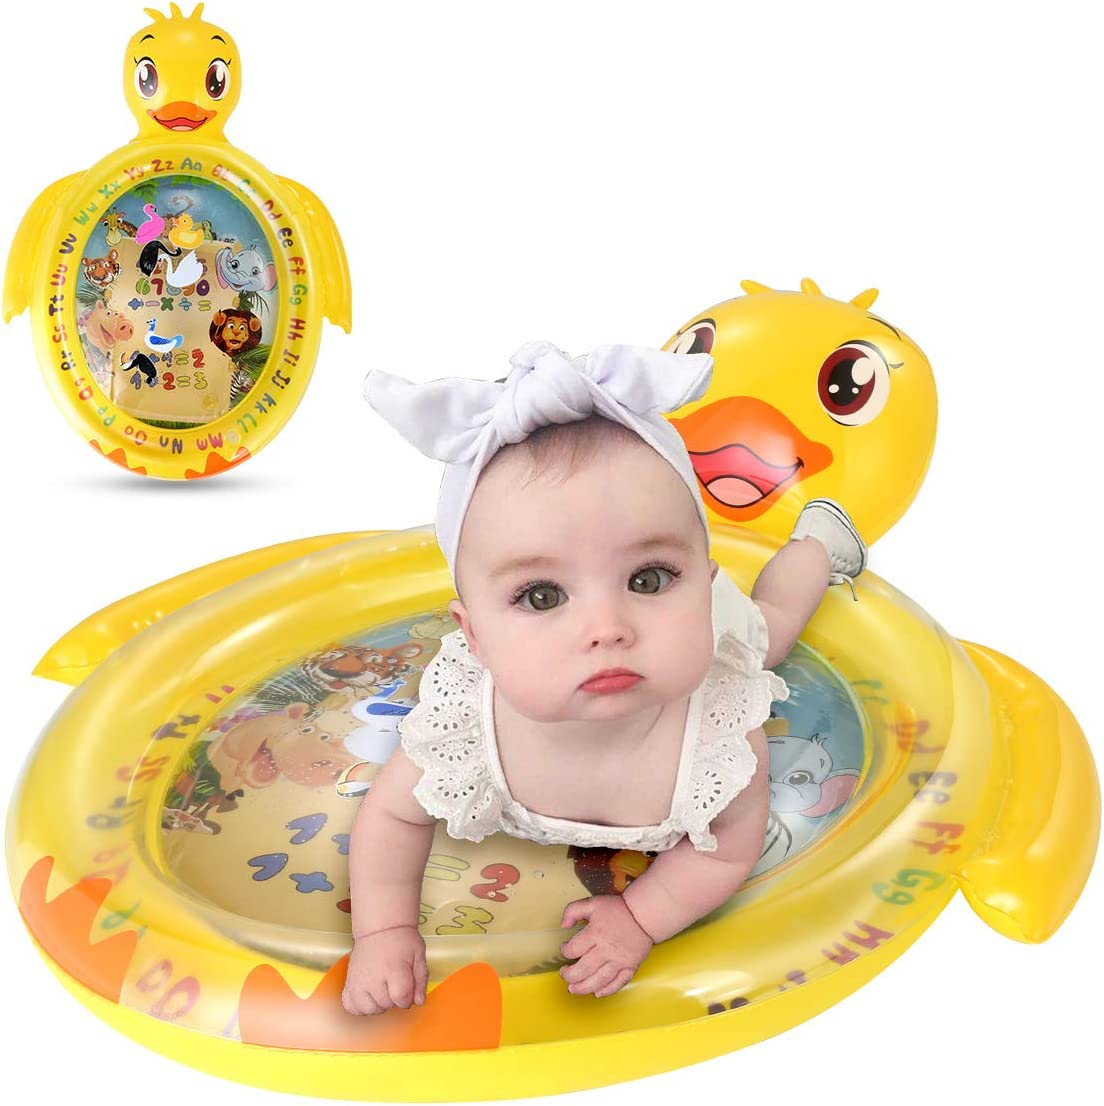 Luchild Outdoor Sprinkle and Splash Water Play Mat 67 Garden Water Toys Play Sprinklers Summer Fun Backyard Play for Infants